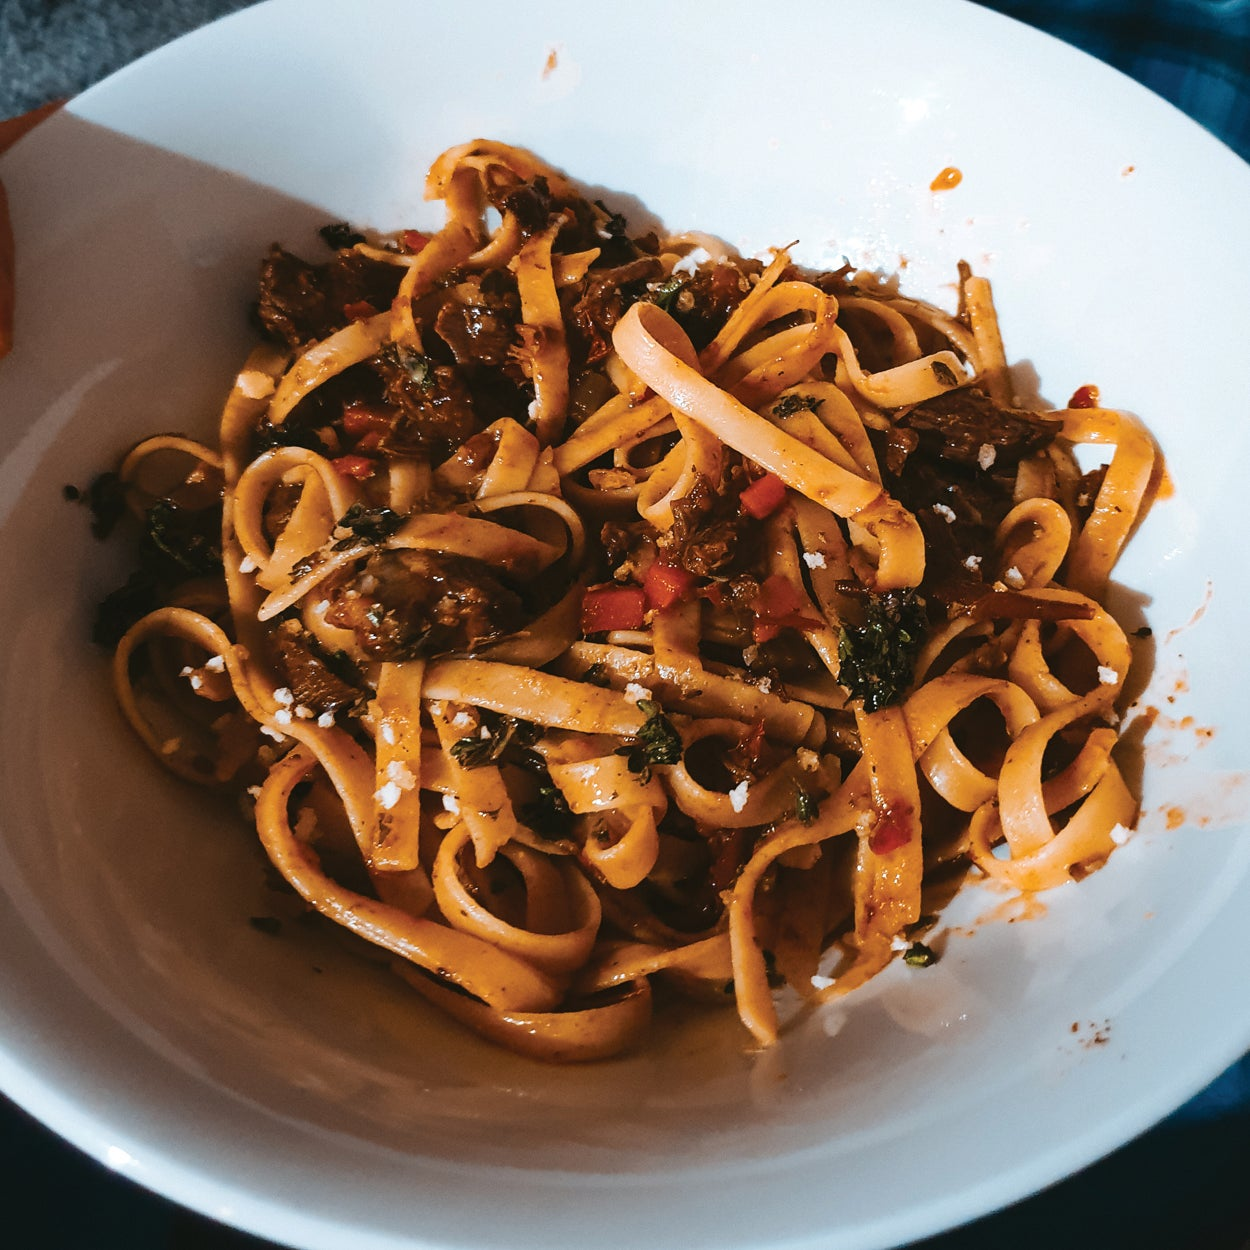 Dan's Attempt at Another Food Blogger's Beef Cheek Ragu!